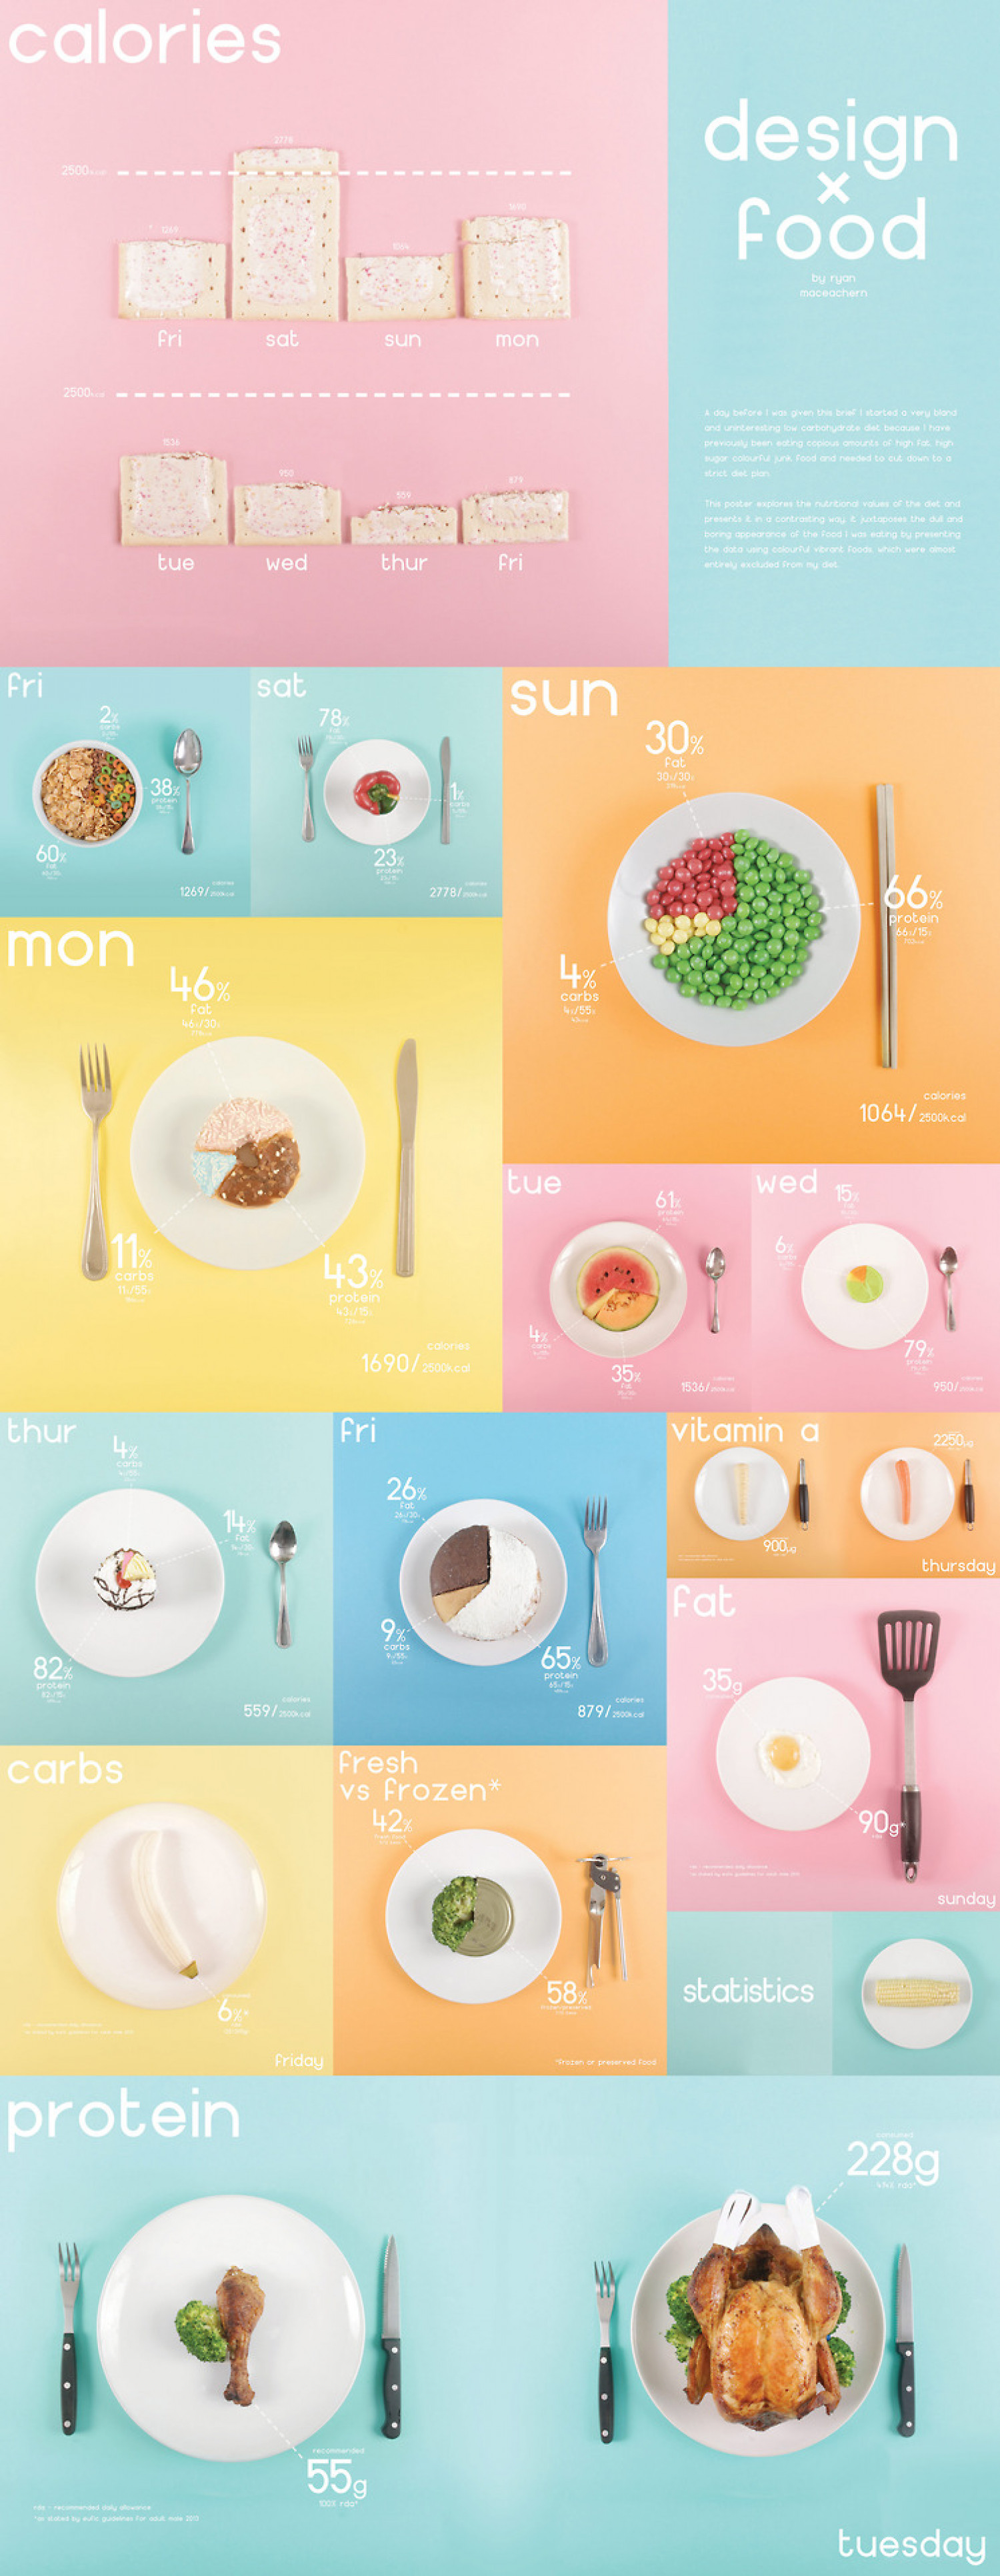 design x food Infographic